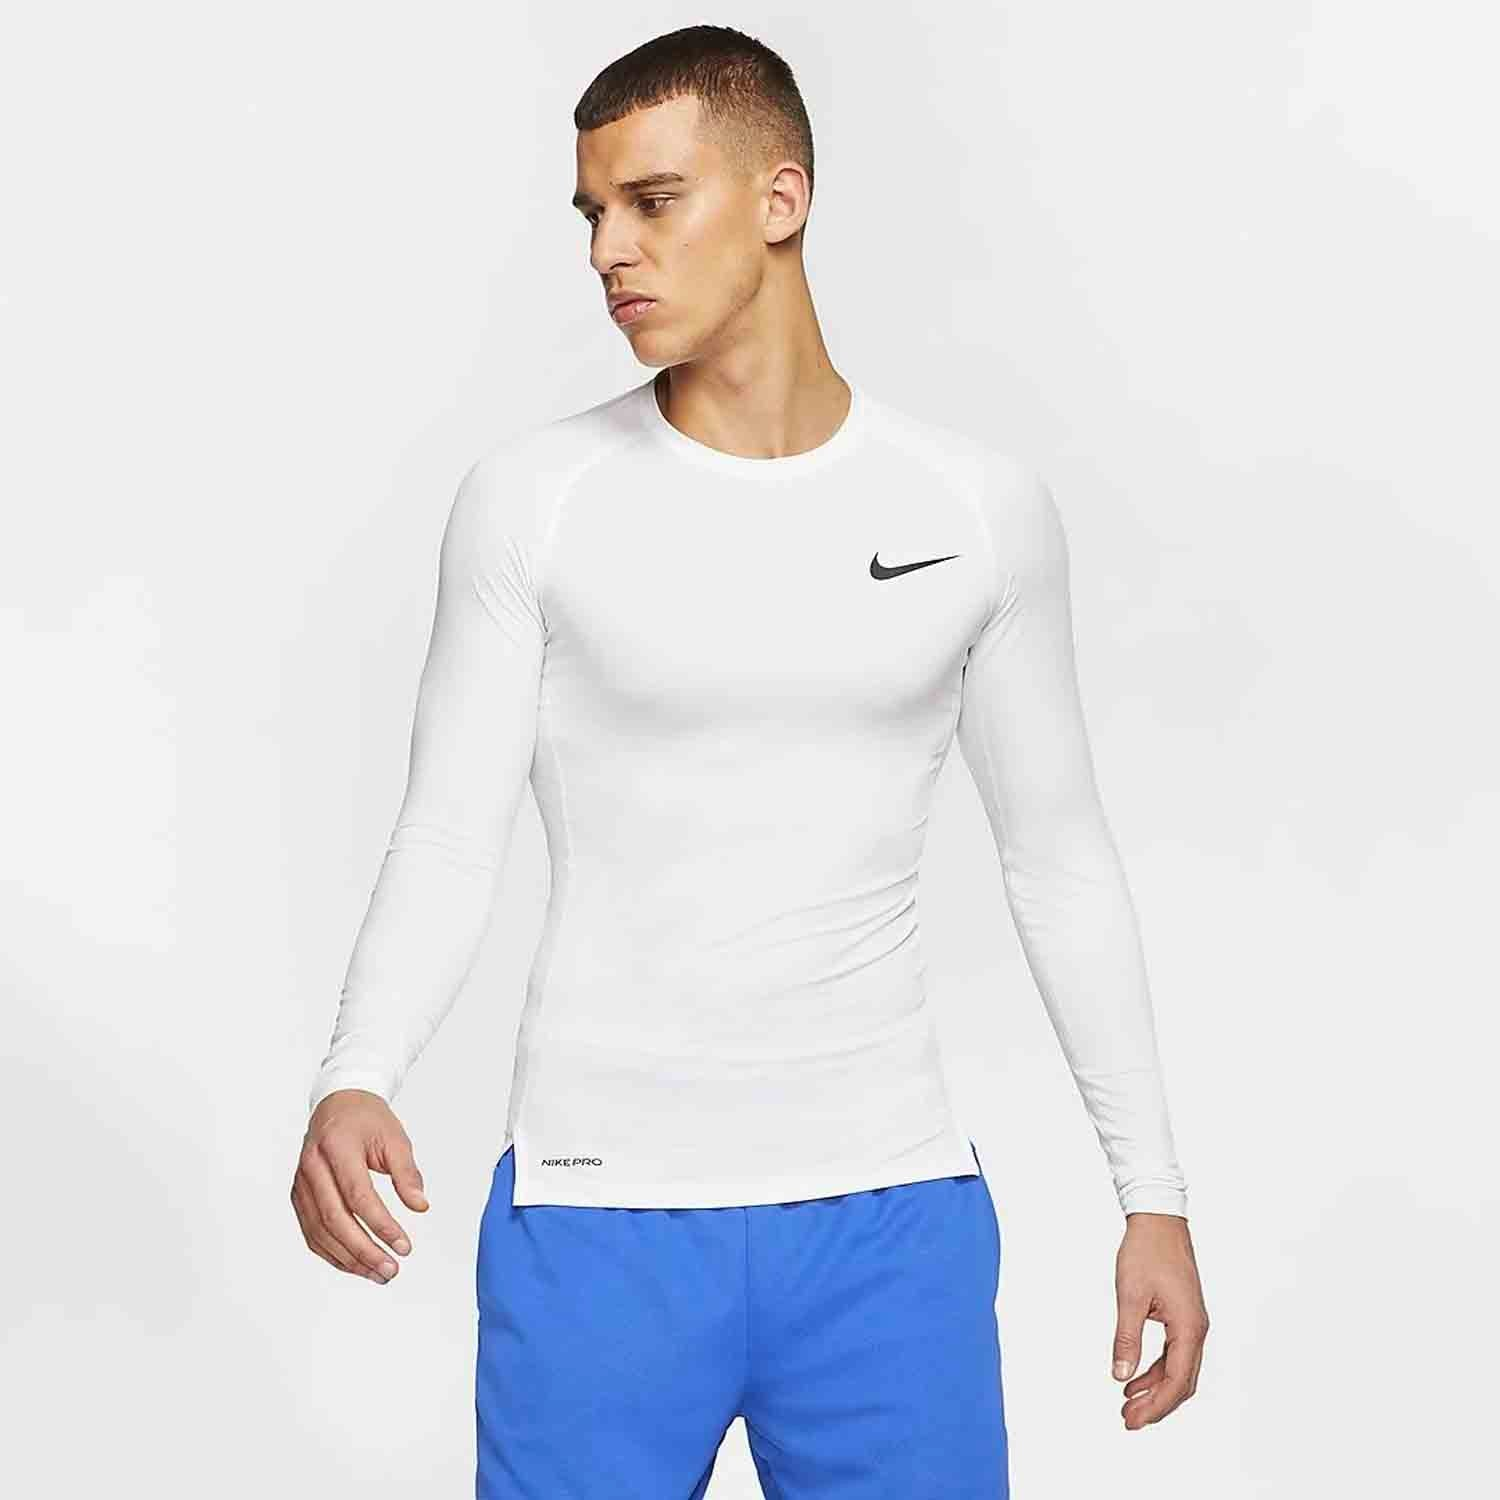 Pro Men's Tight Fit Long-Sleeve Top